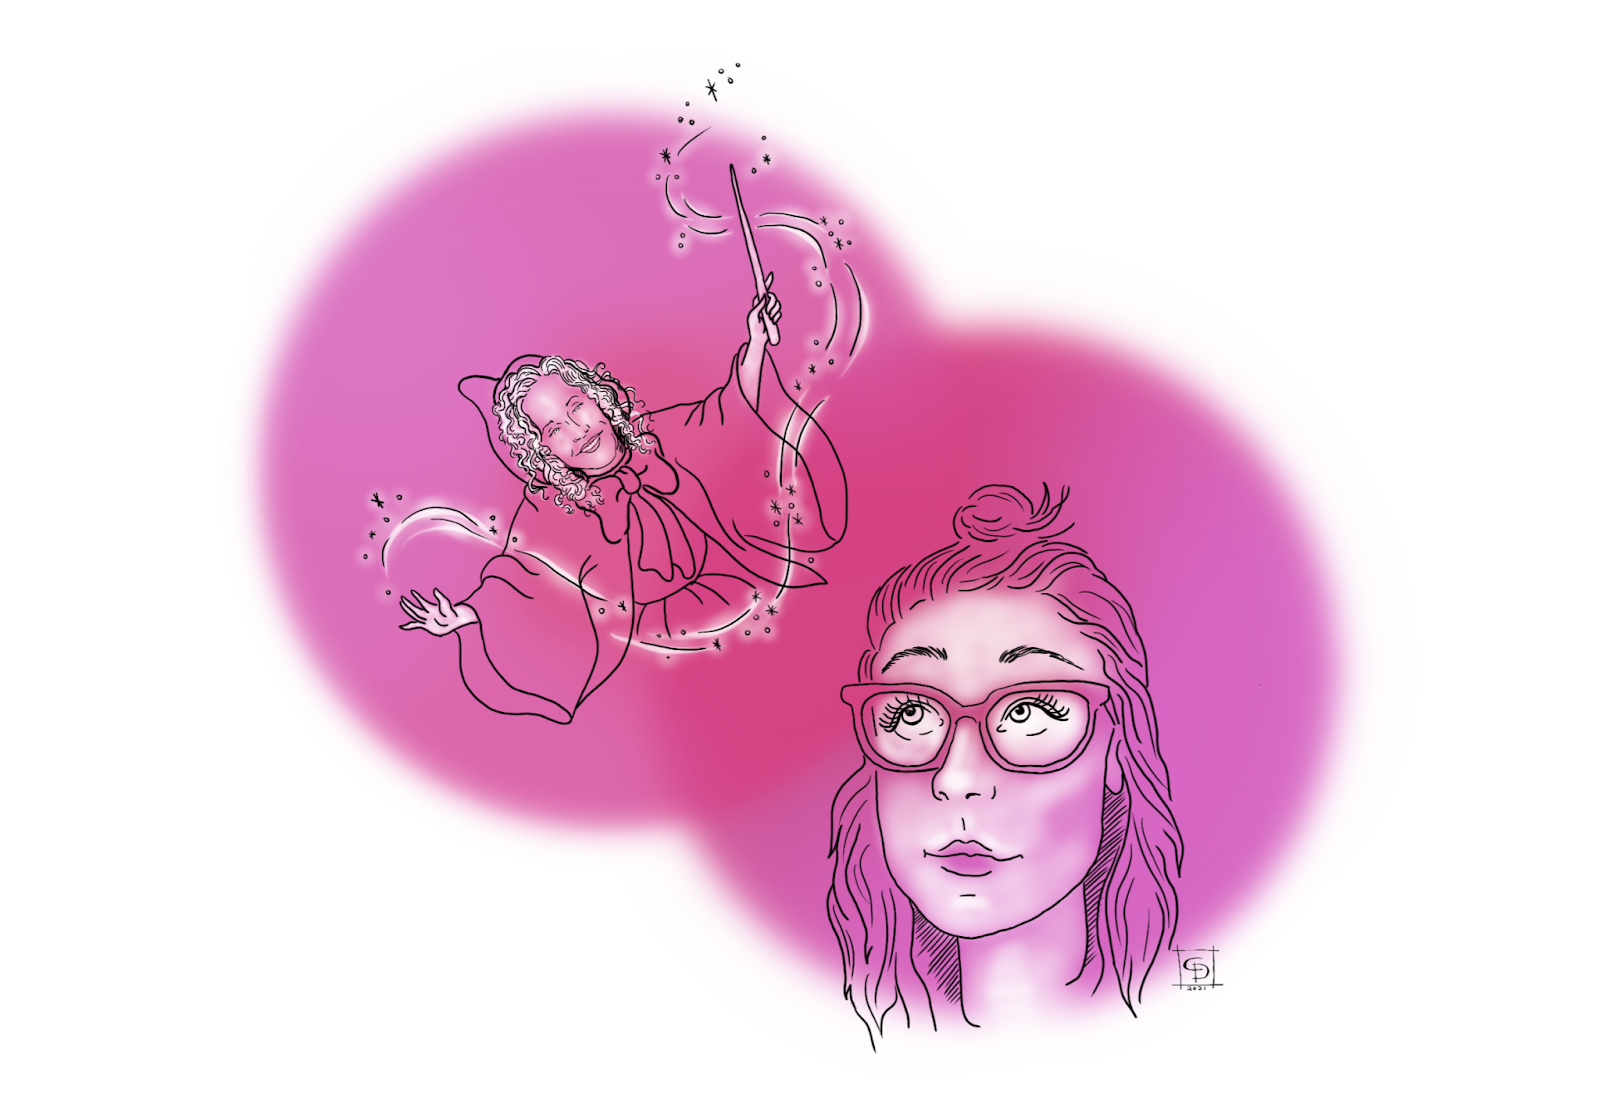 Woman looks up over her right shoulder at her fairy godmother who is whirling a magic wand.